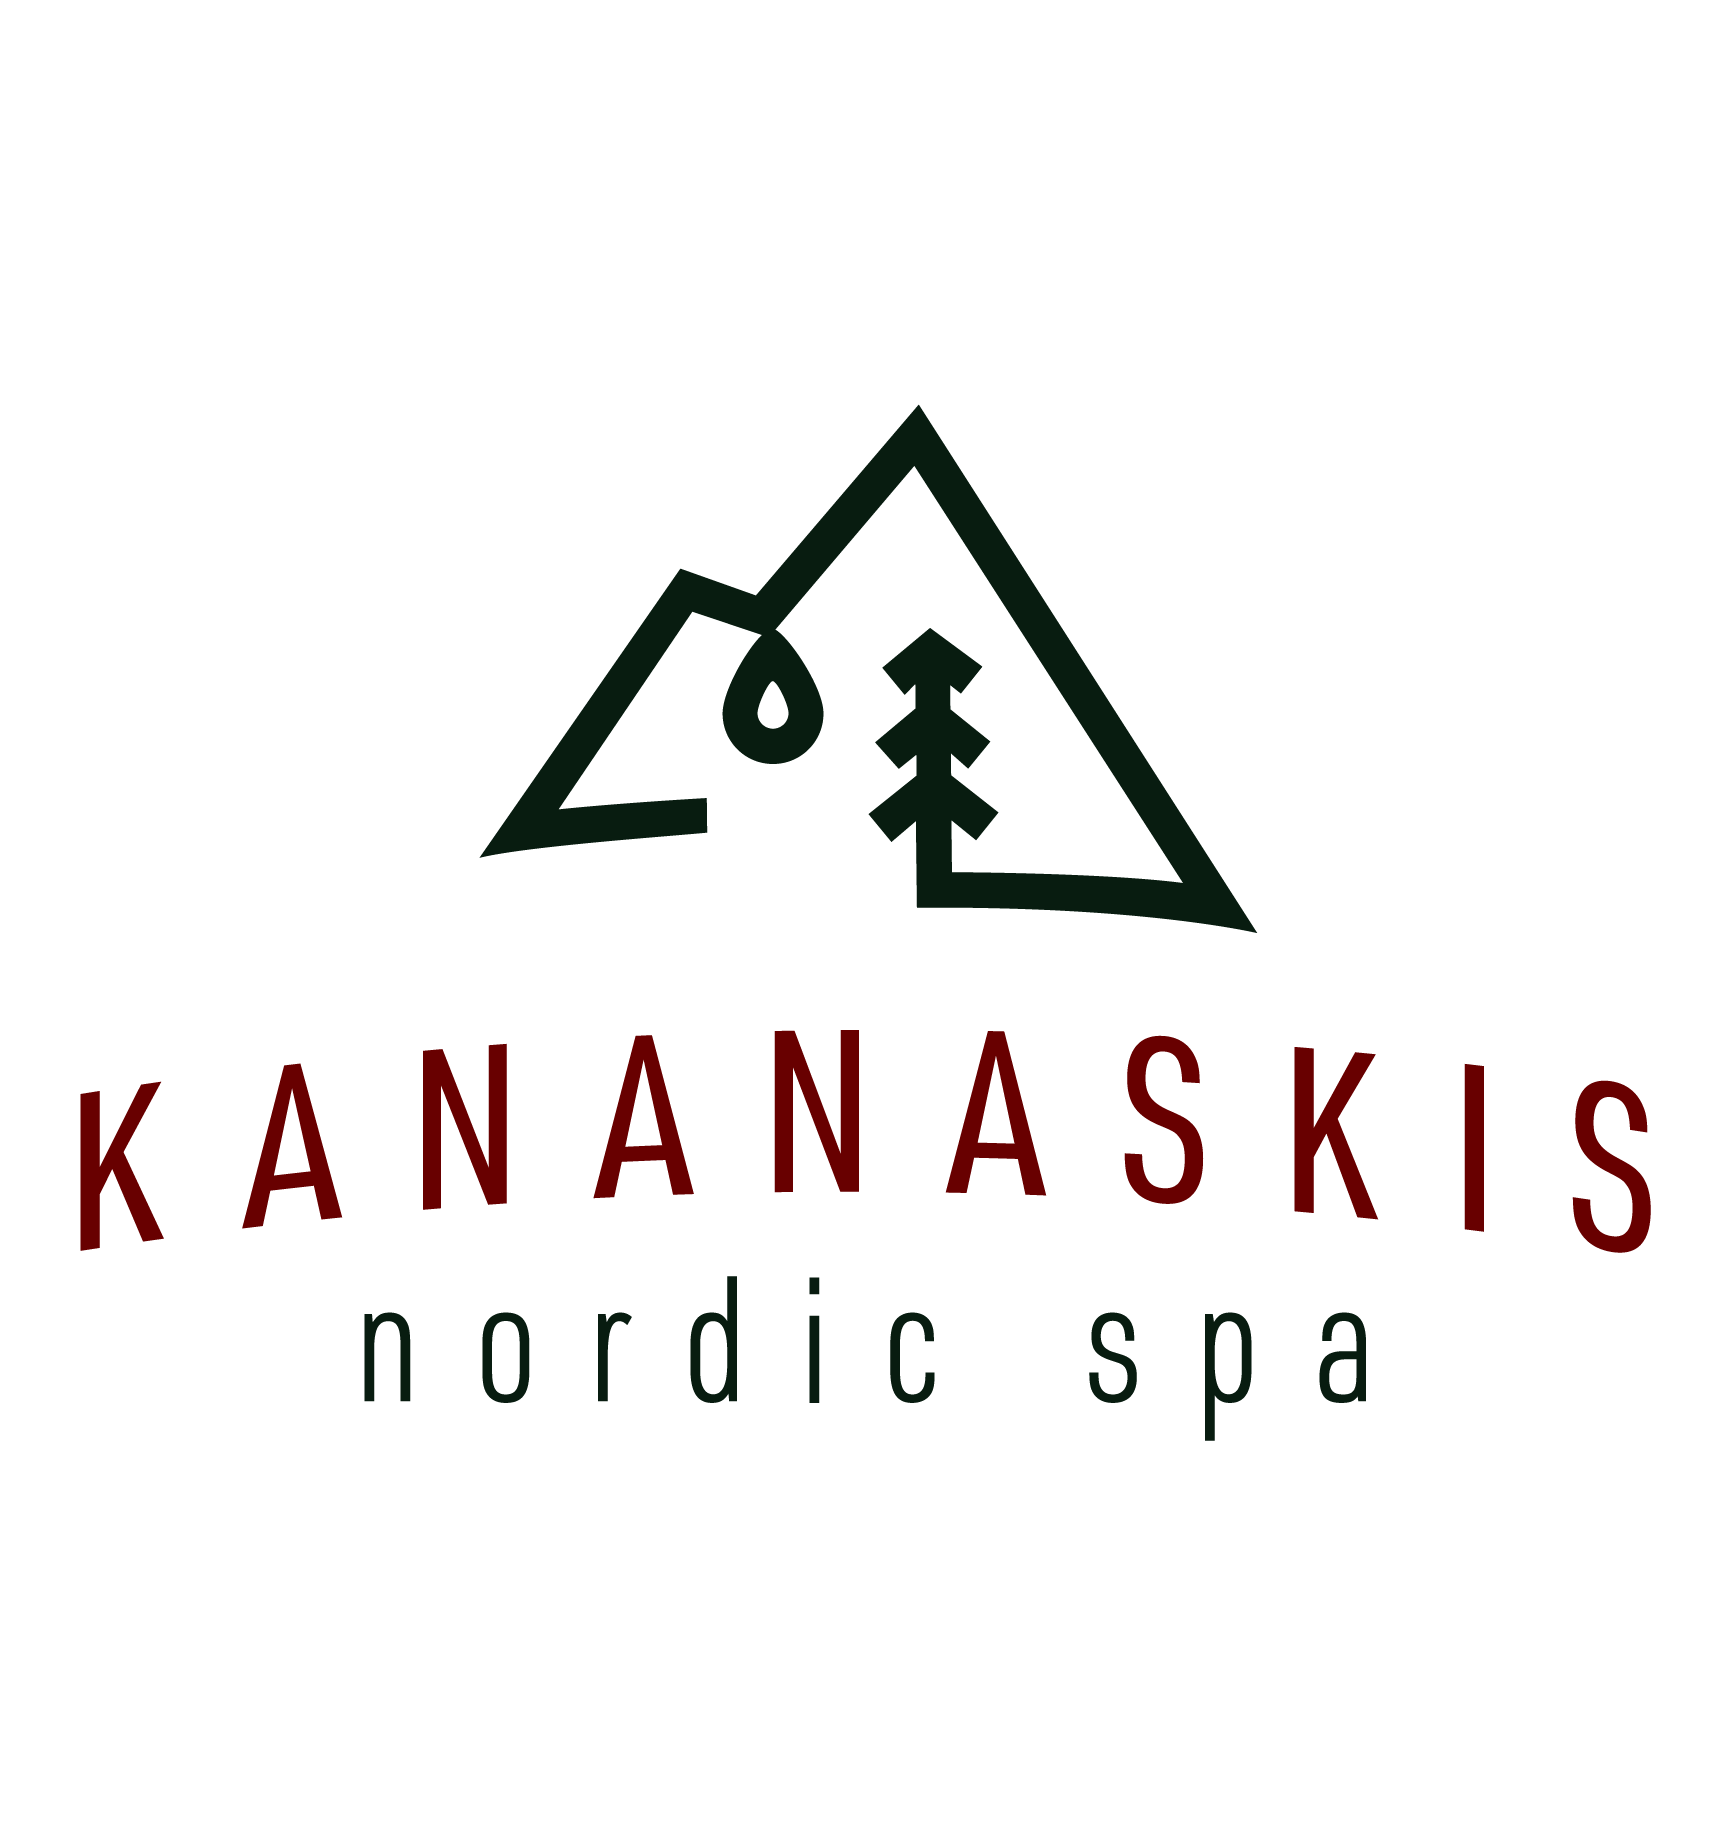 Just 45 minutes southwest of Calgary, Alberta, the Kananaskis Nordic Spa spans over 50000 sq. ft., including five outdoor pools, six sauna and steam cabins.